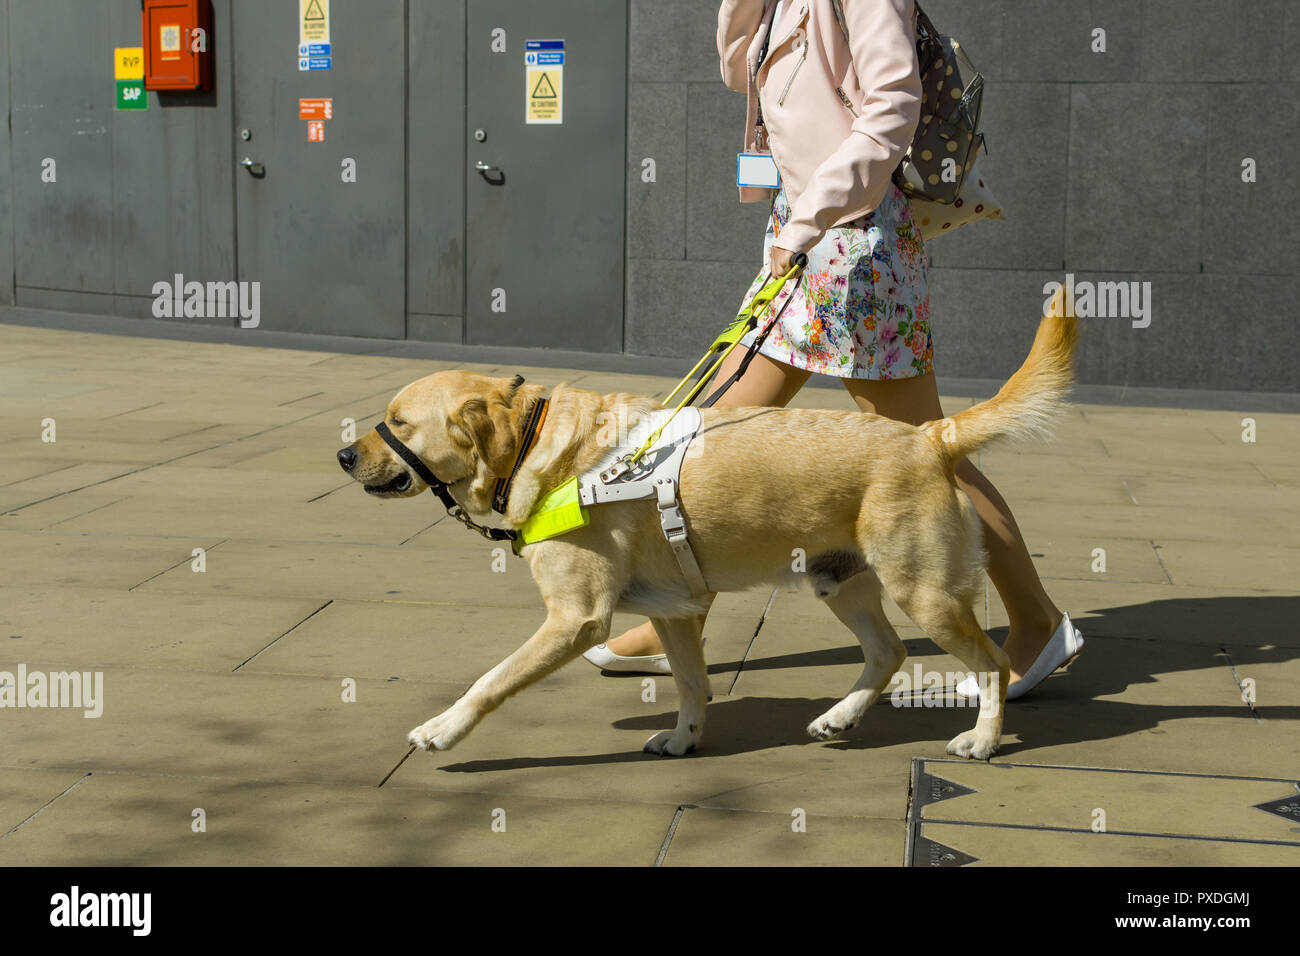 A female guide dog trainer walks a Golden Retriever outside on a sunny day, London, UK - Stock Image